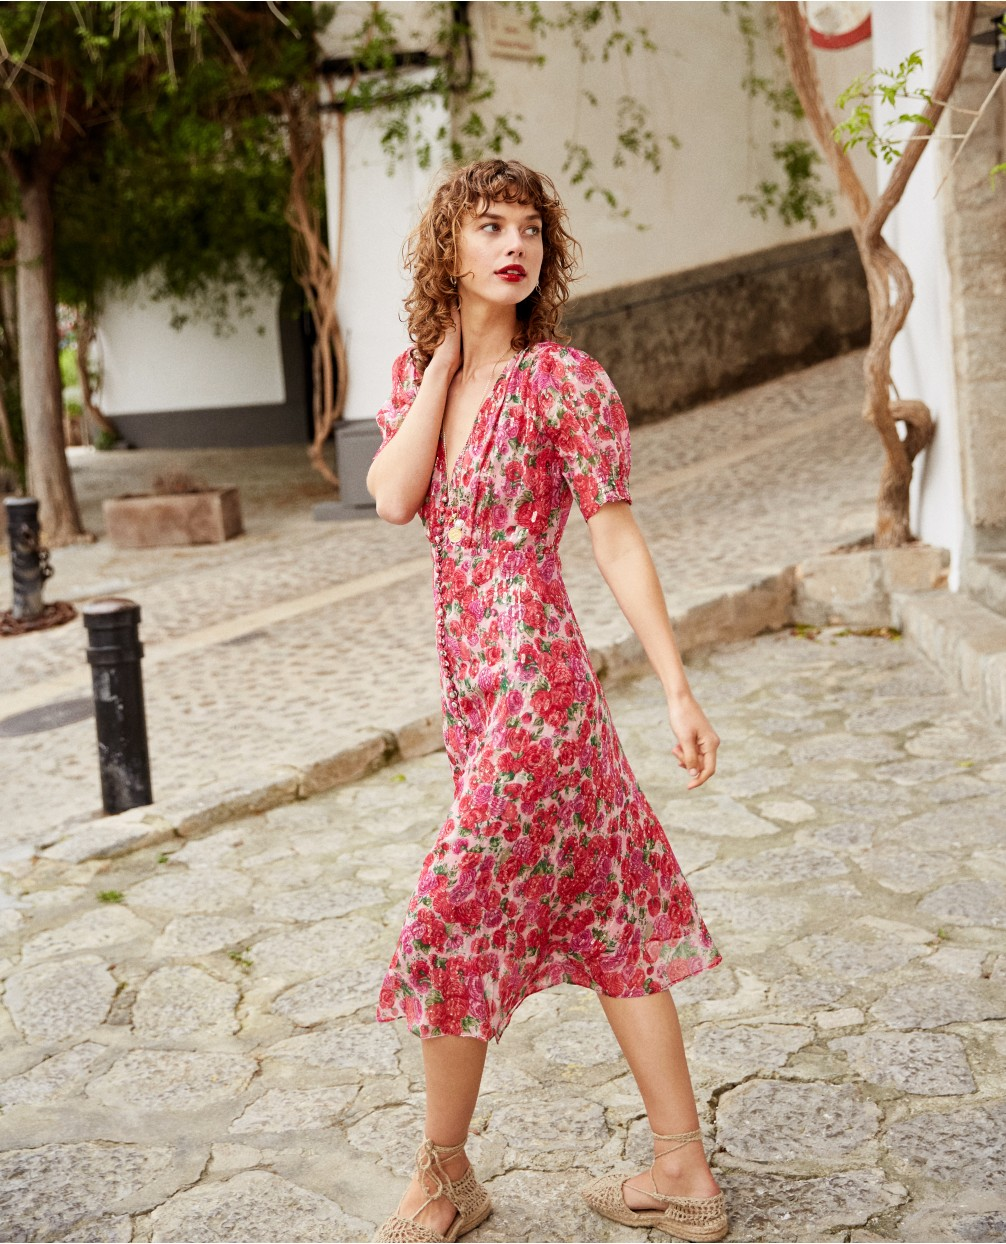 The Kooples Official Website - Long party dress with floral motif